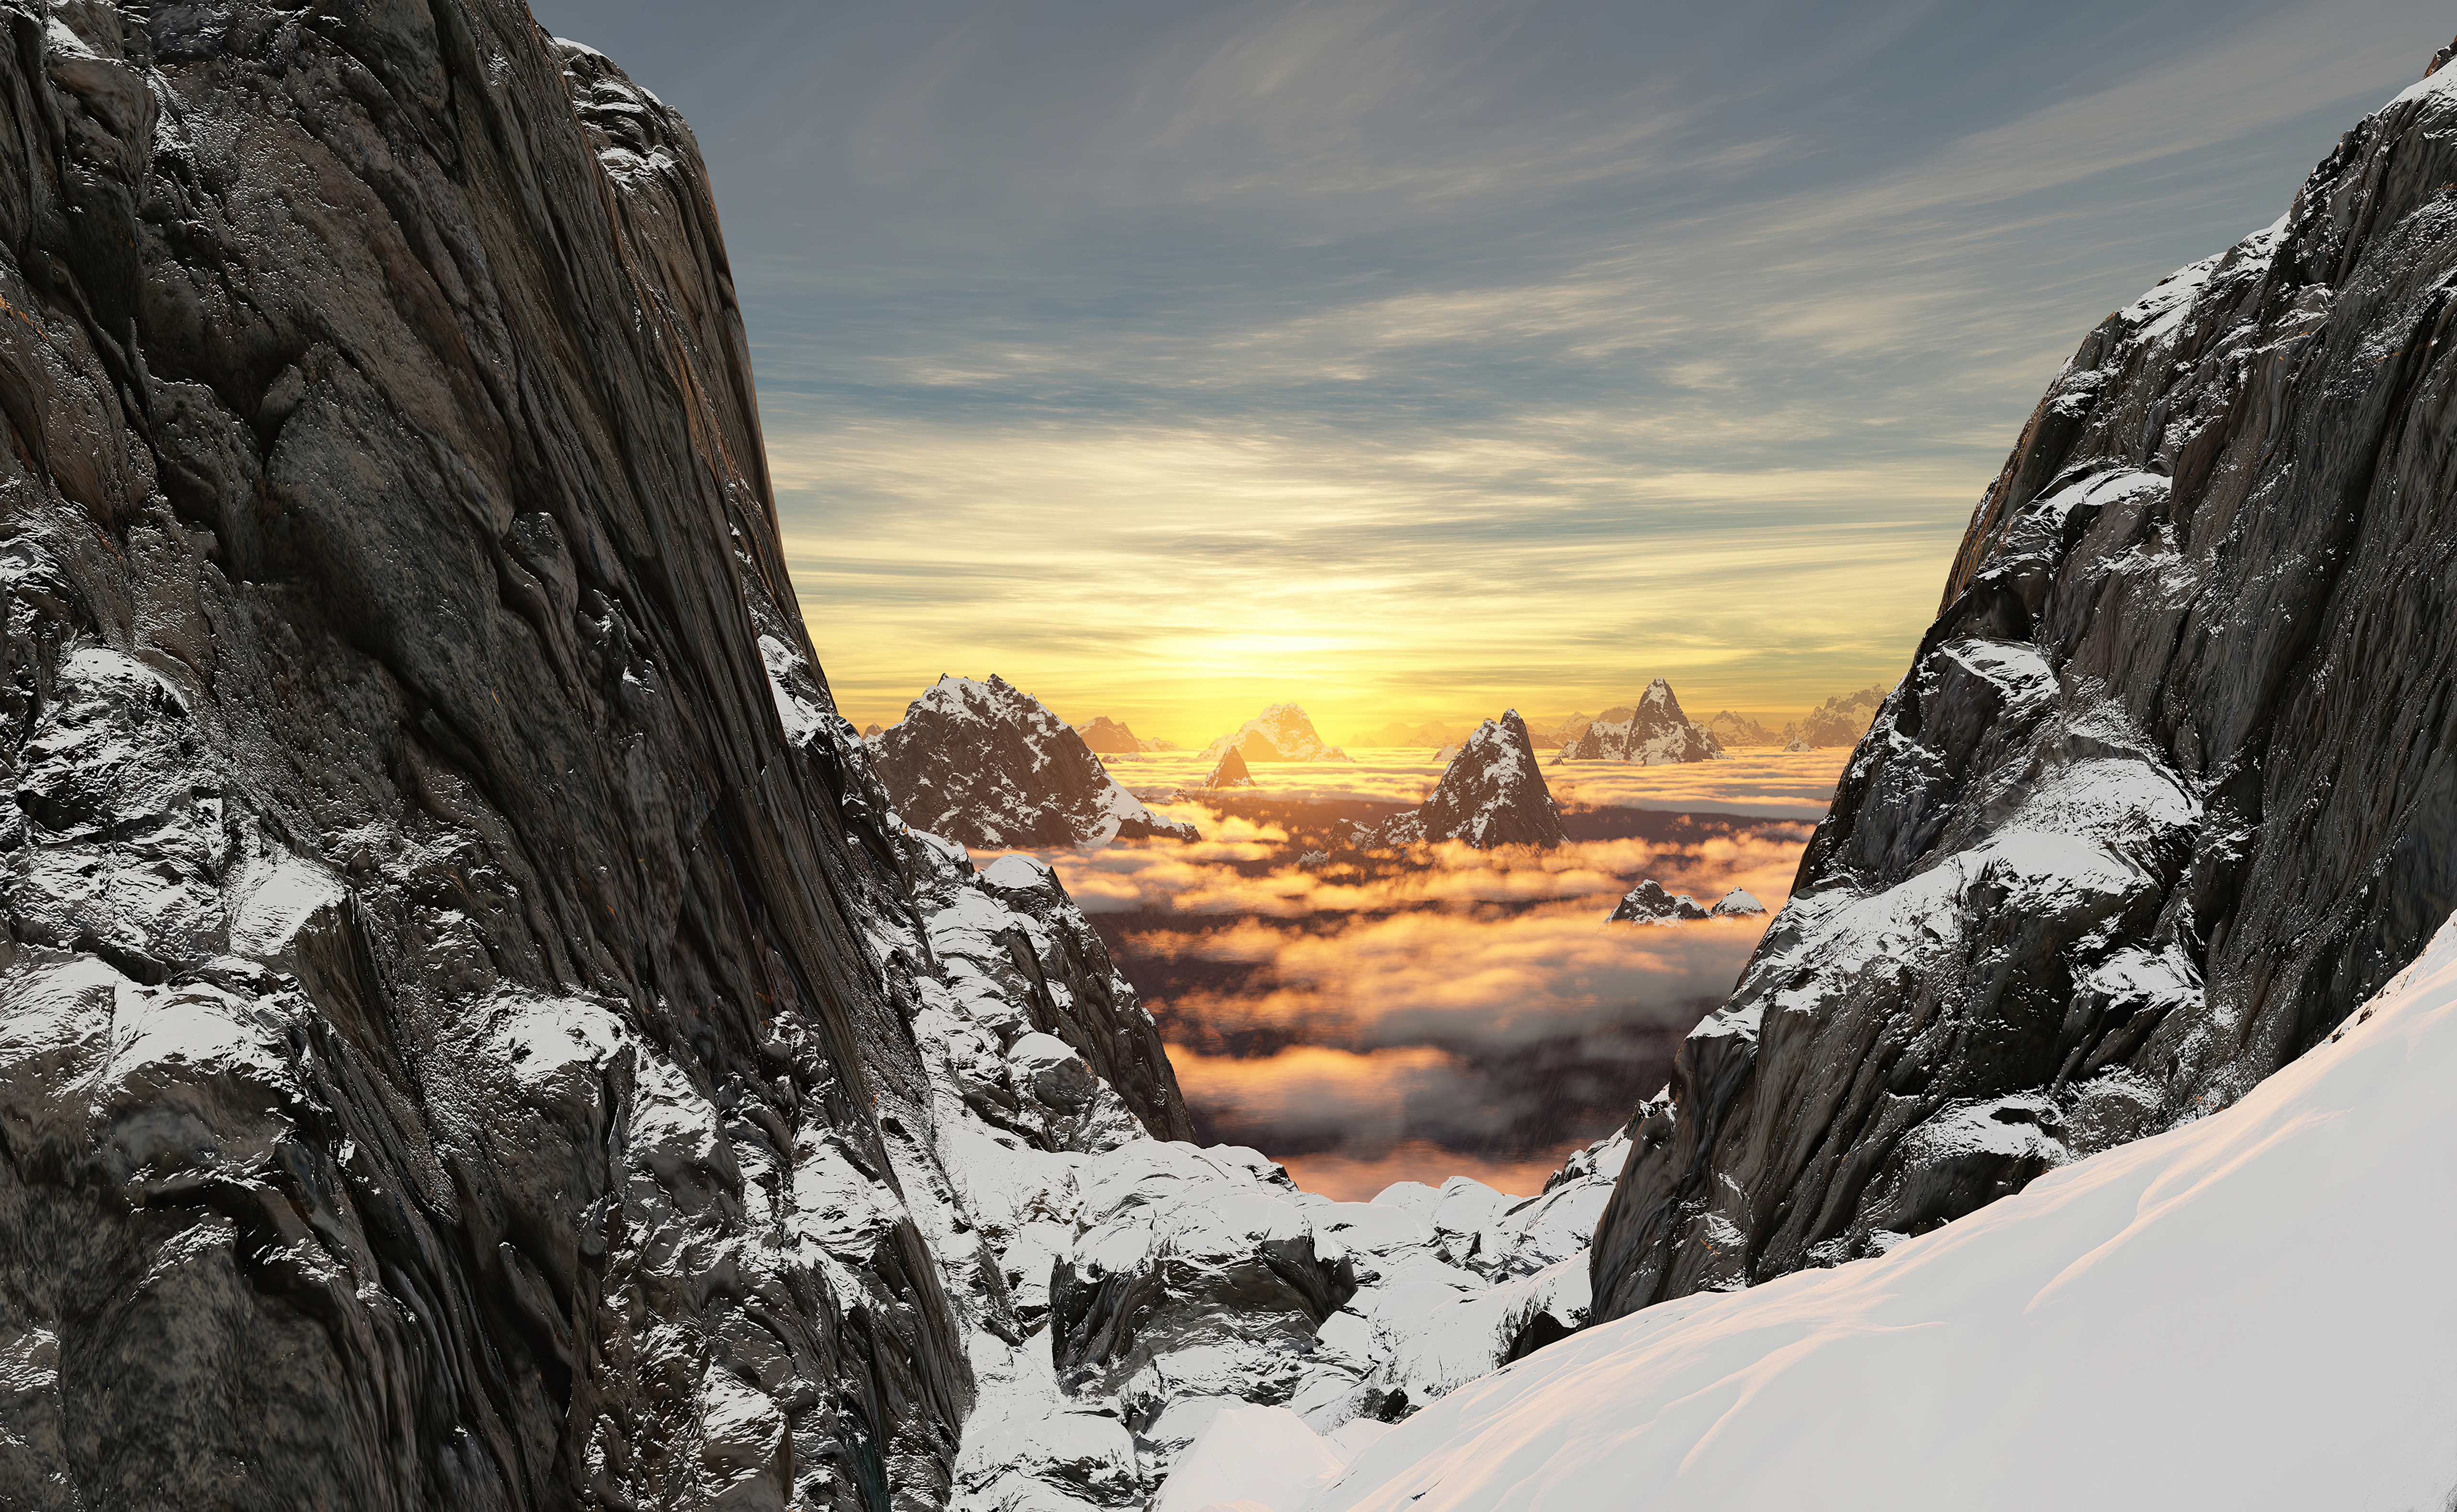 Wallpaper Mountains with snow at sunrise